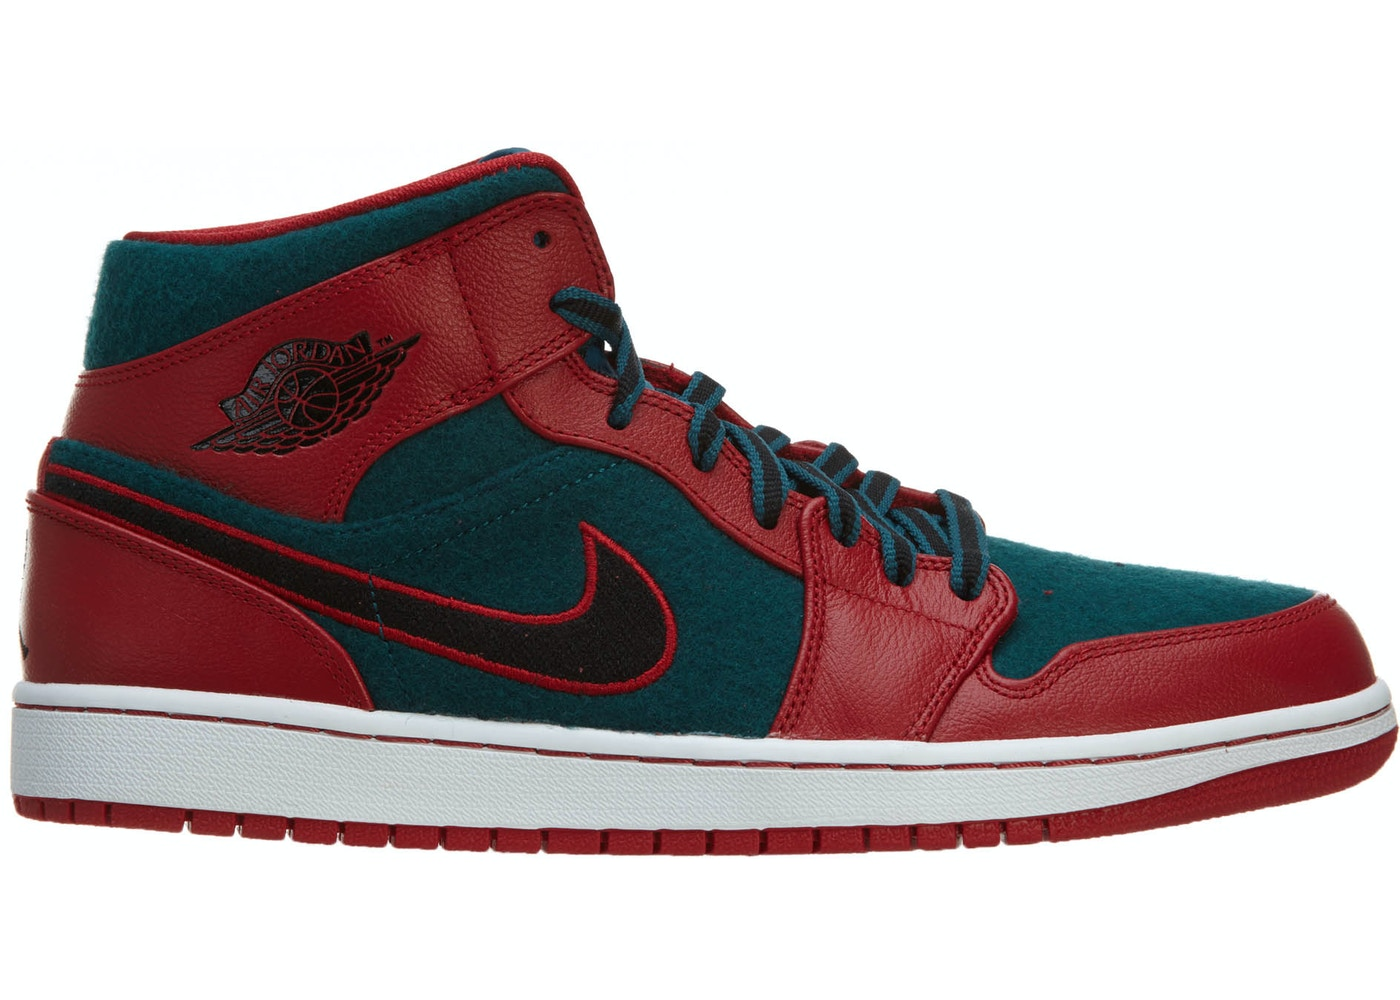 d4b7165a95820a Jordan Air Jordan 1 Mid Gym Red Black-Dark Sea - 633206-608